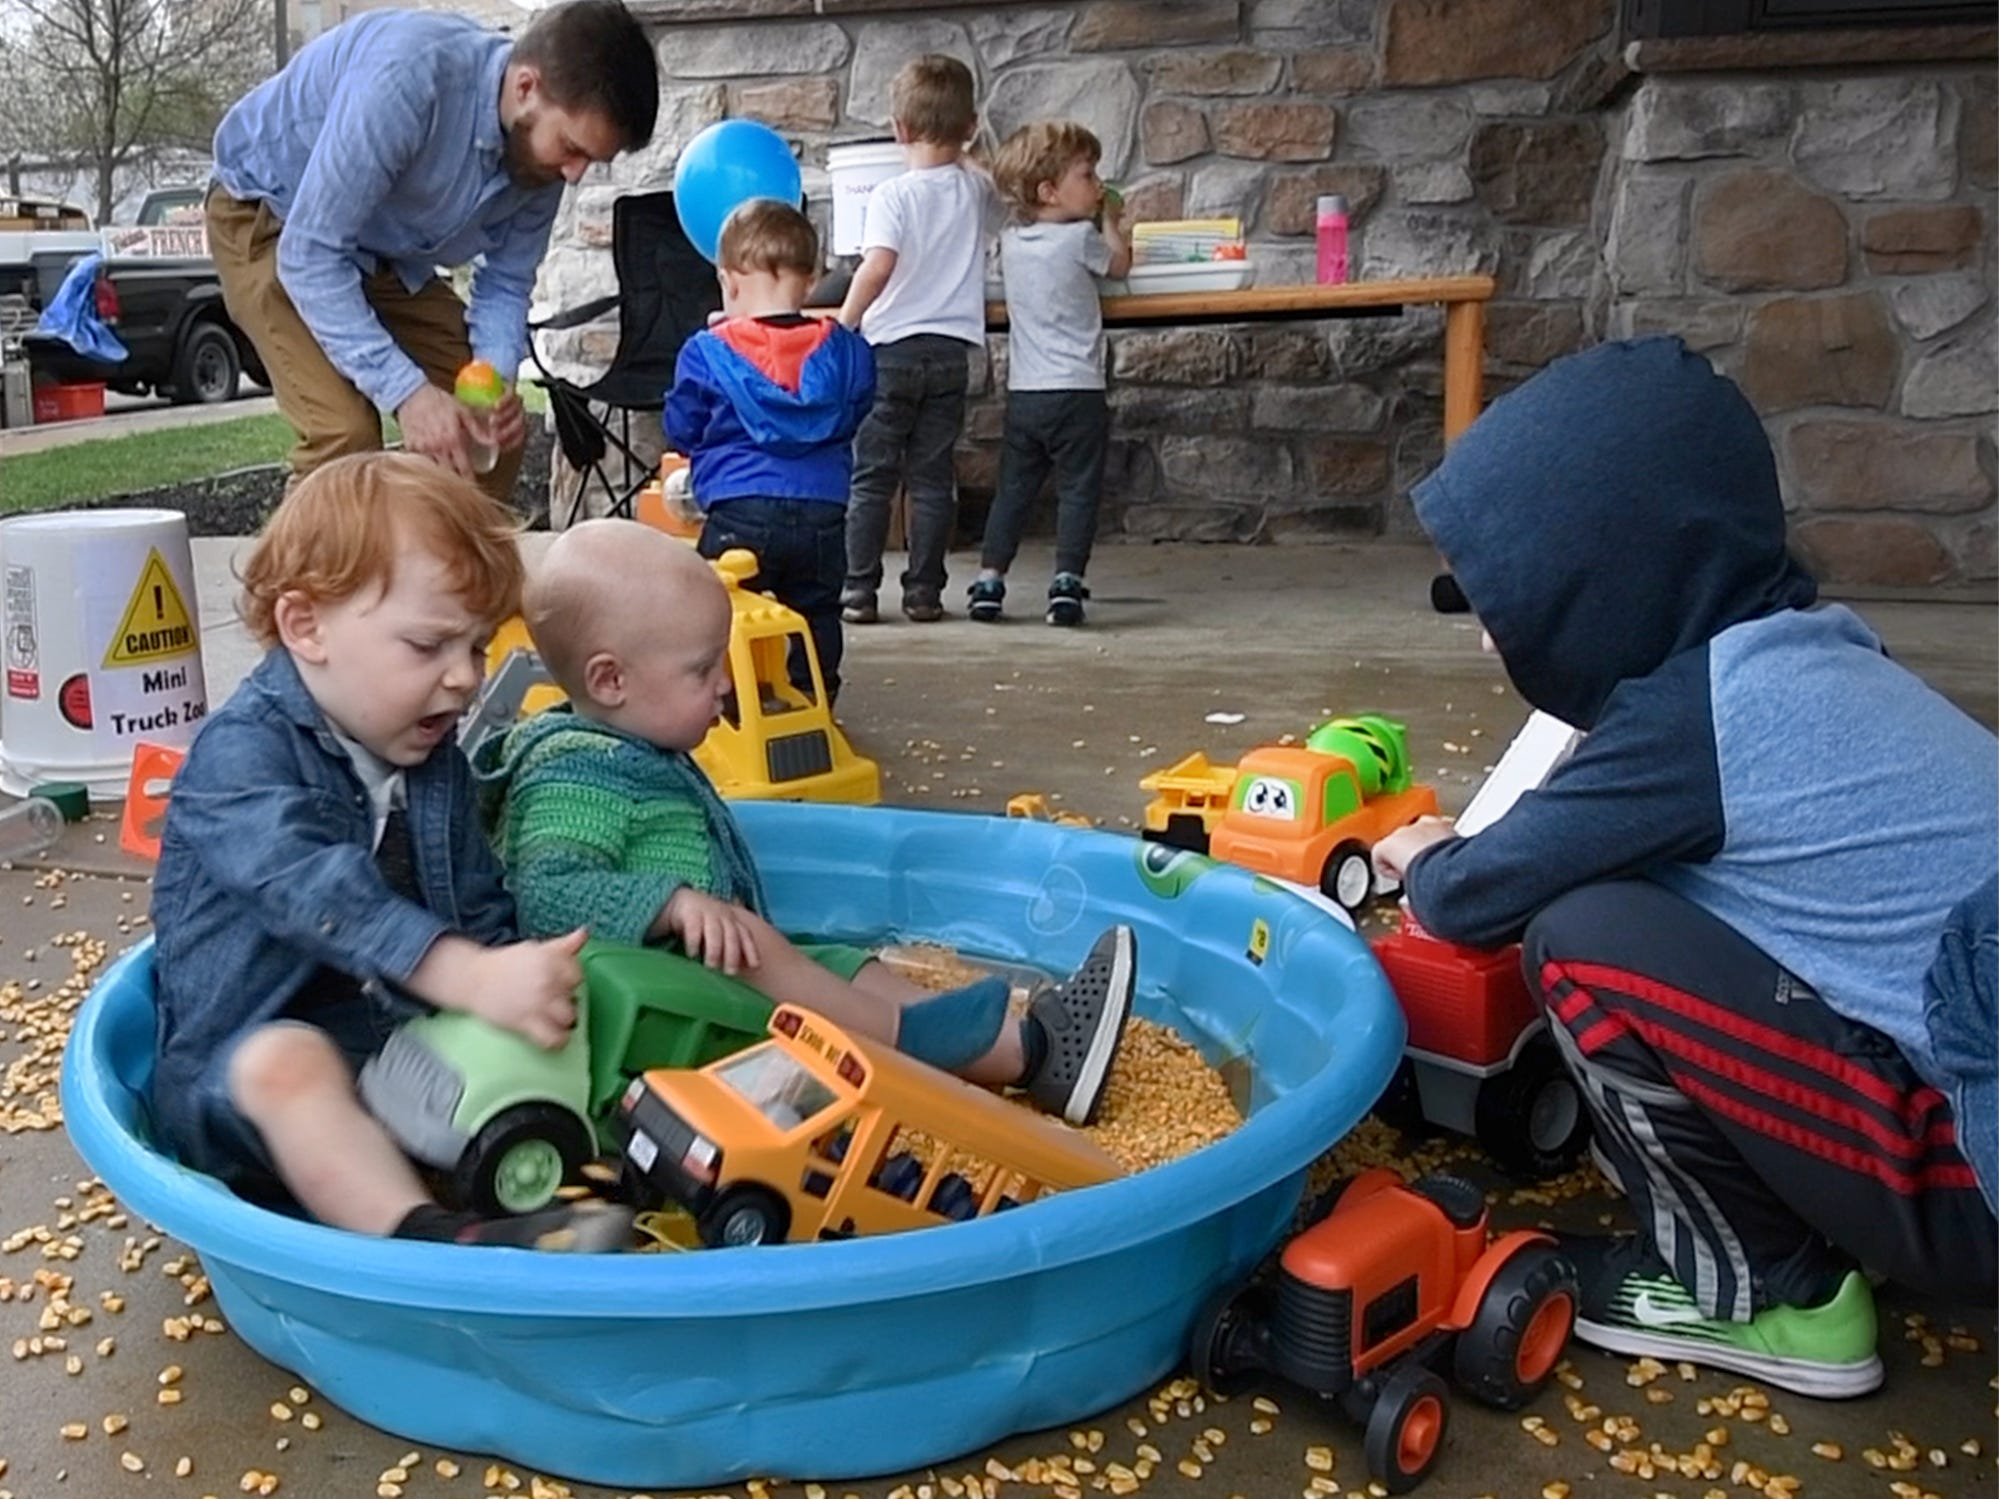 Children play in a corn box with toy trucks after experiencing real ones during the Truck Zoo at Paul Smith Library of Southern York County.